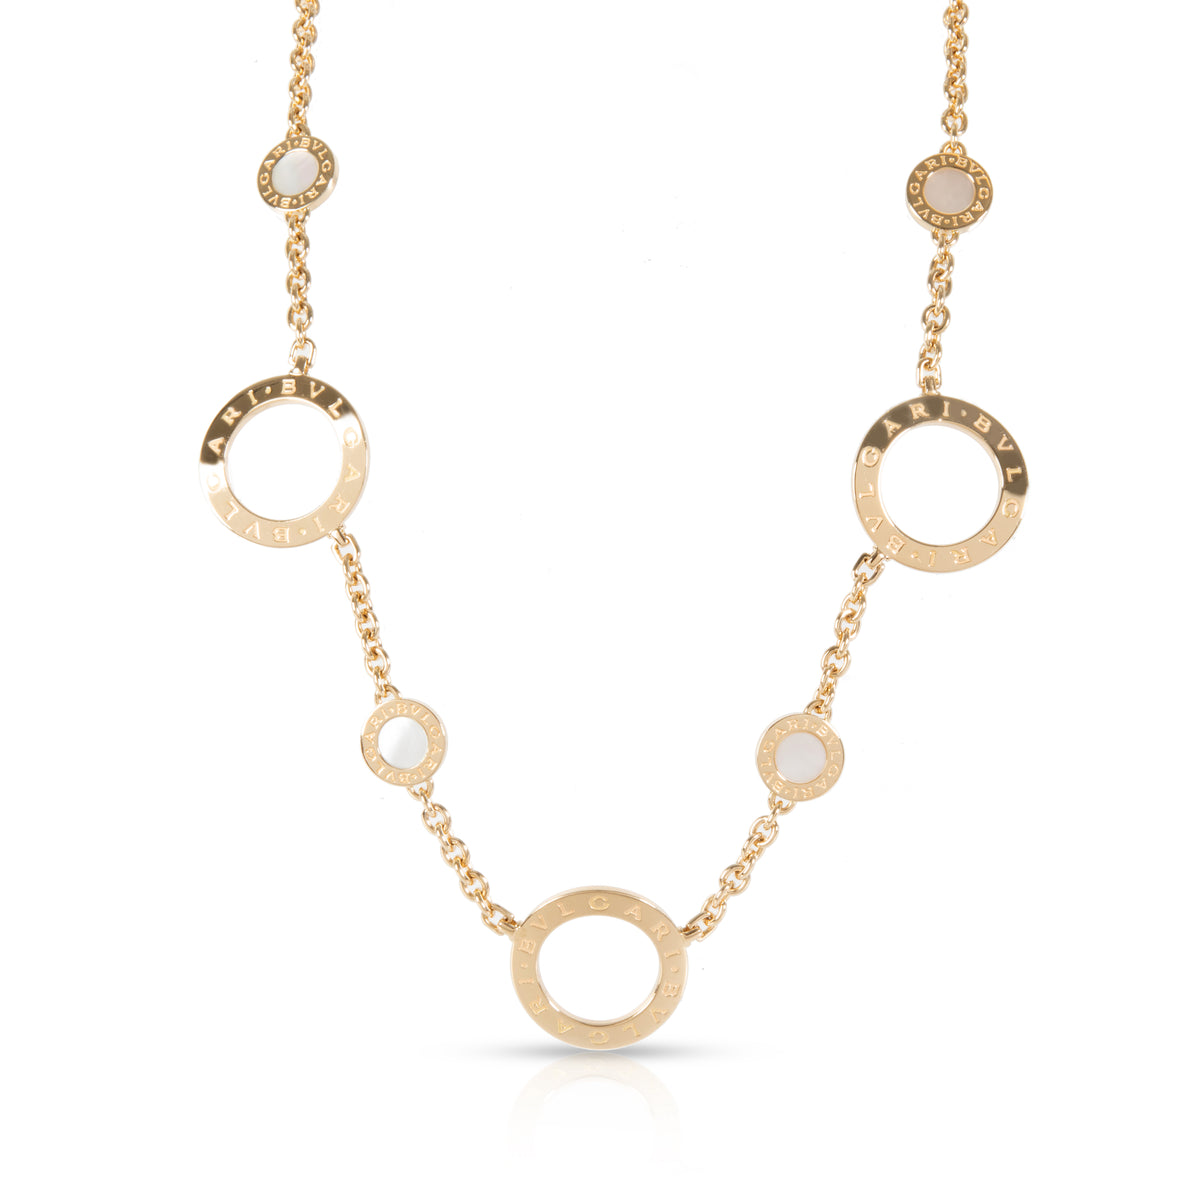 Bulgari Mother Of Pearl Station Necklace in 18KT Yellow Gold